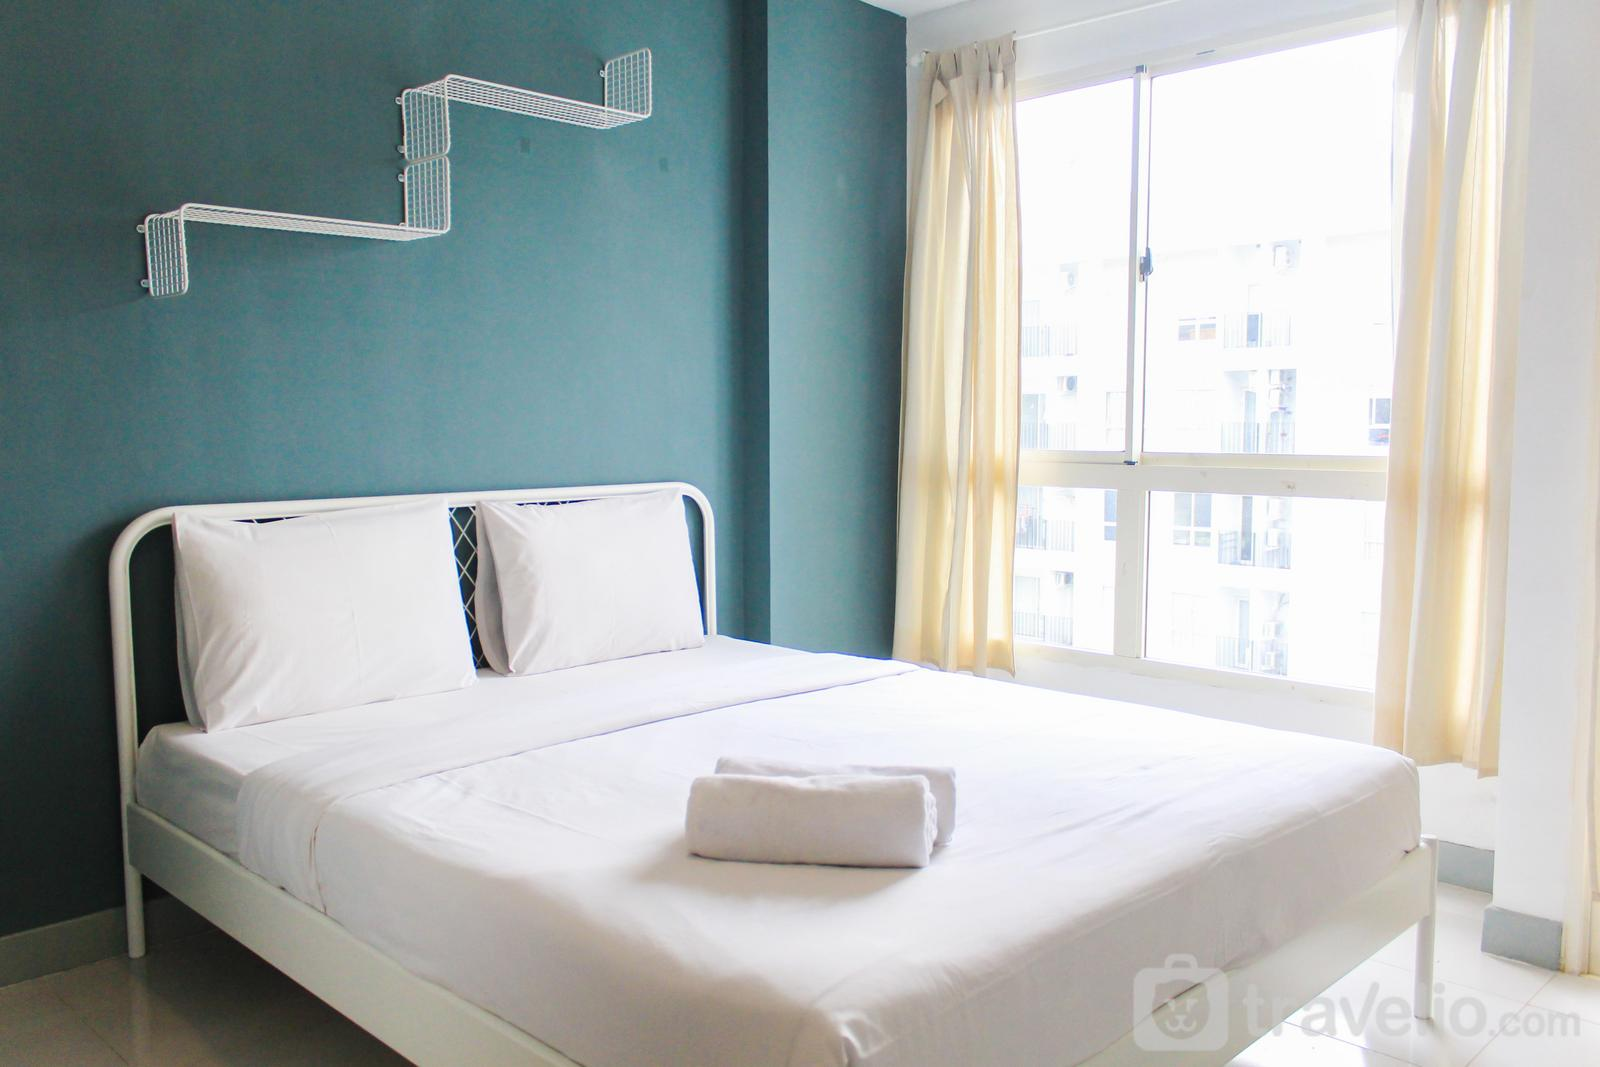 Apartemen Scientia Residence - Comfort and Simply Studio Apartment at Scientia Residence By Travelio